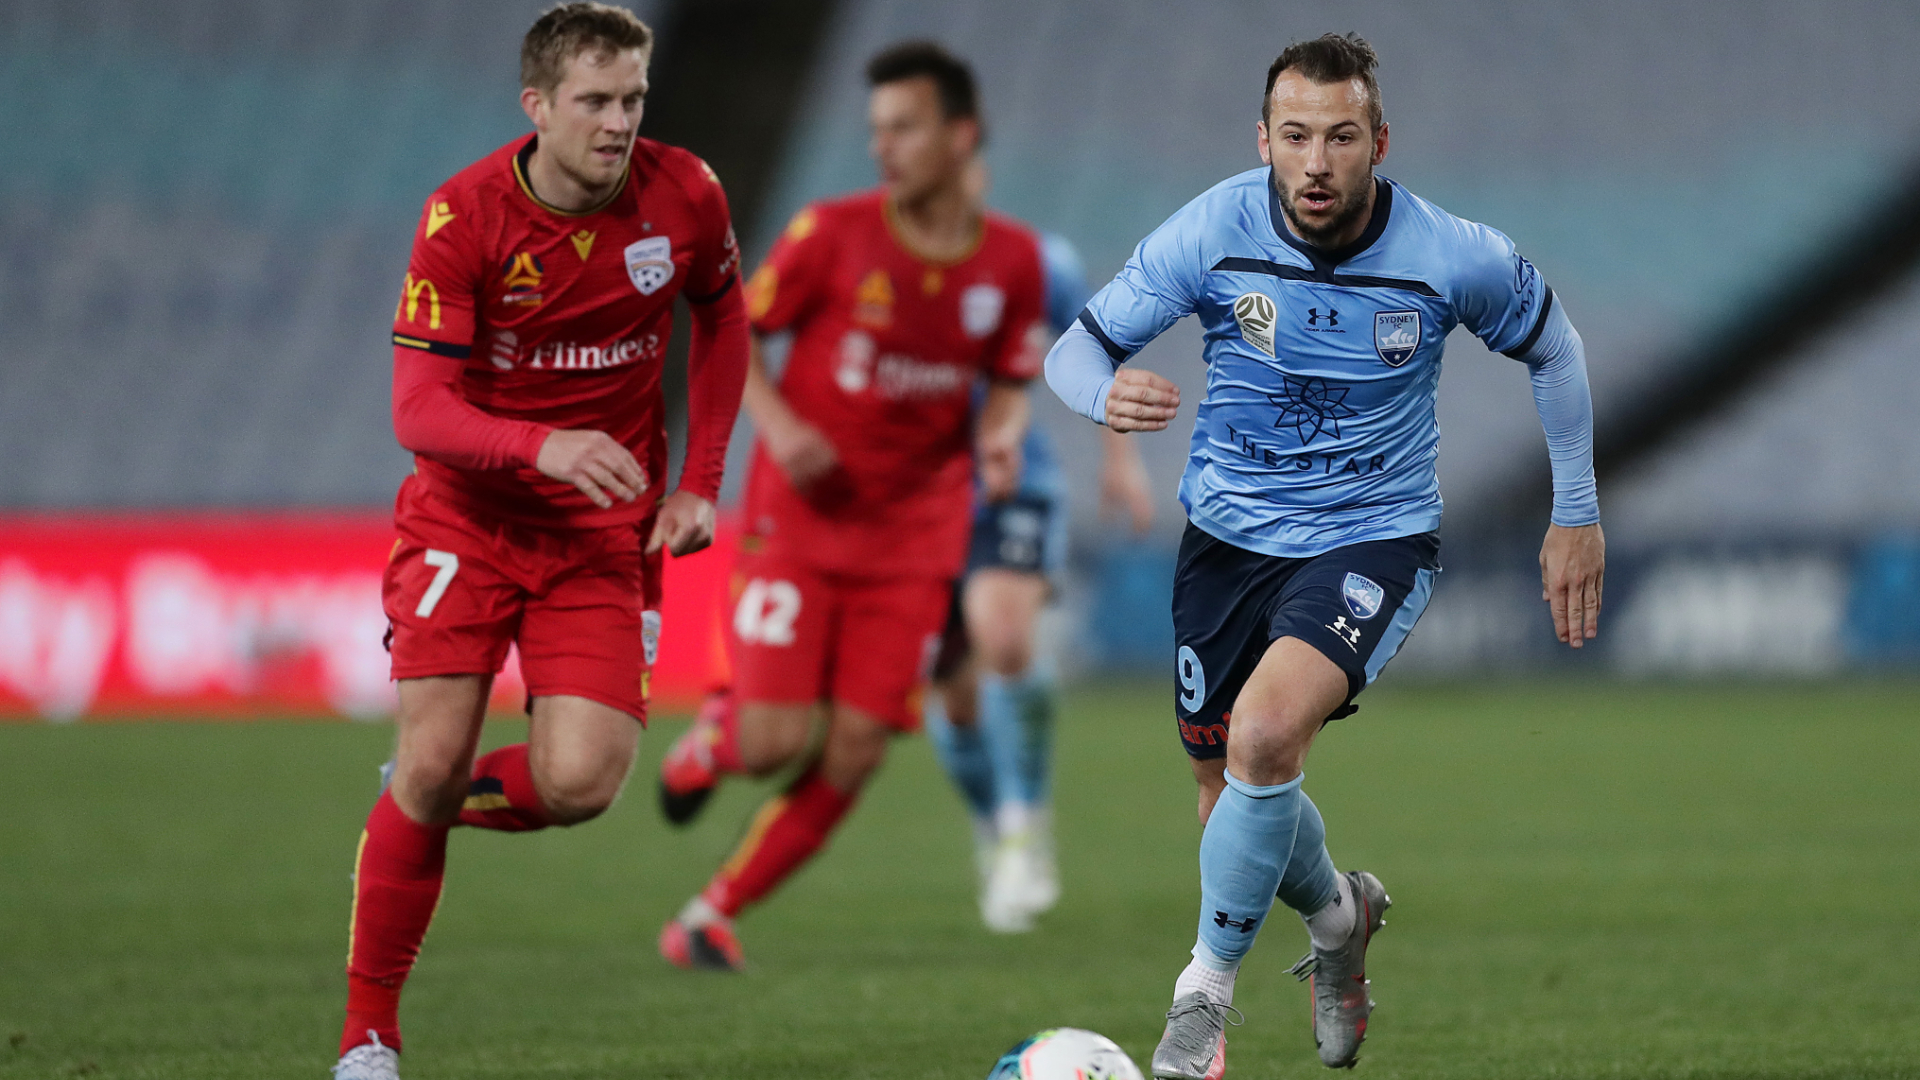 Adelaide United 1-1 Sydney FC: Le Fondre leaves Finals spot in the balance